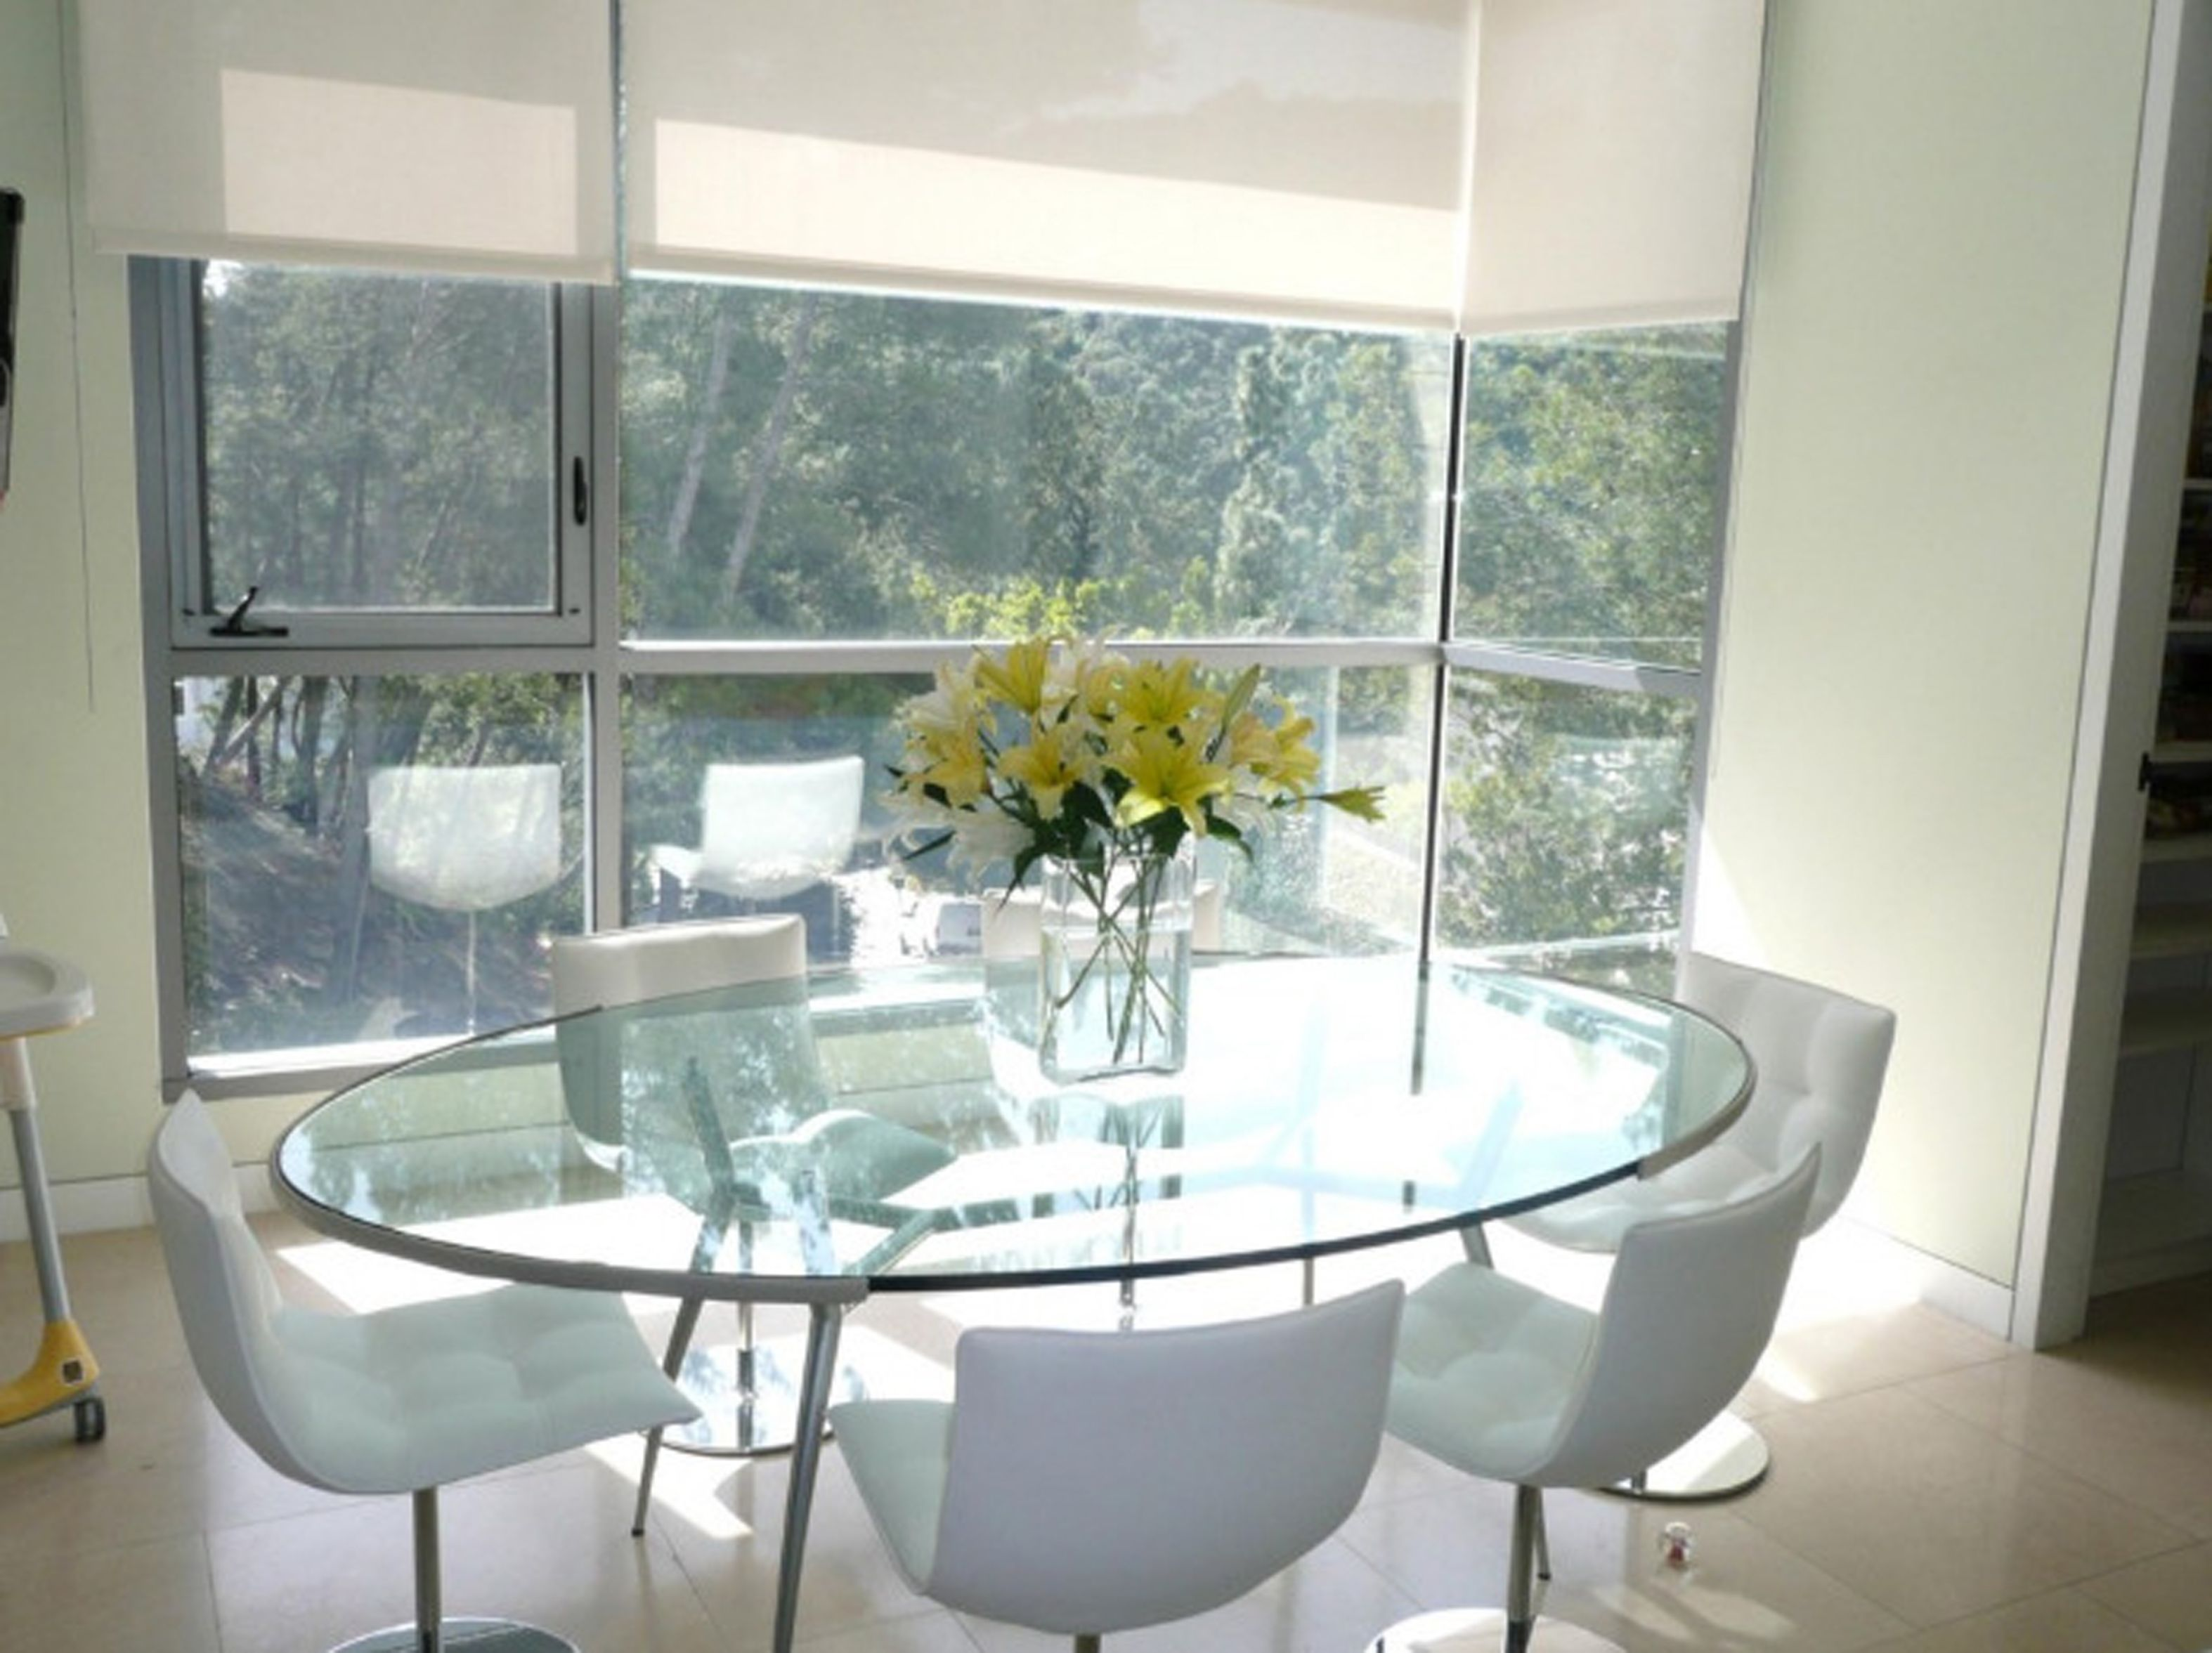 Round Wood Dining Room Table Sets Metal Dining Room Chairs Table Pads For Dining R Oval Glass Dining Table Oval Glass Dining Room Table Glass Dining Room Table